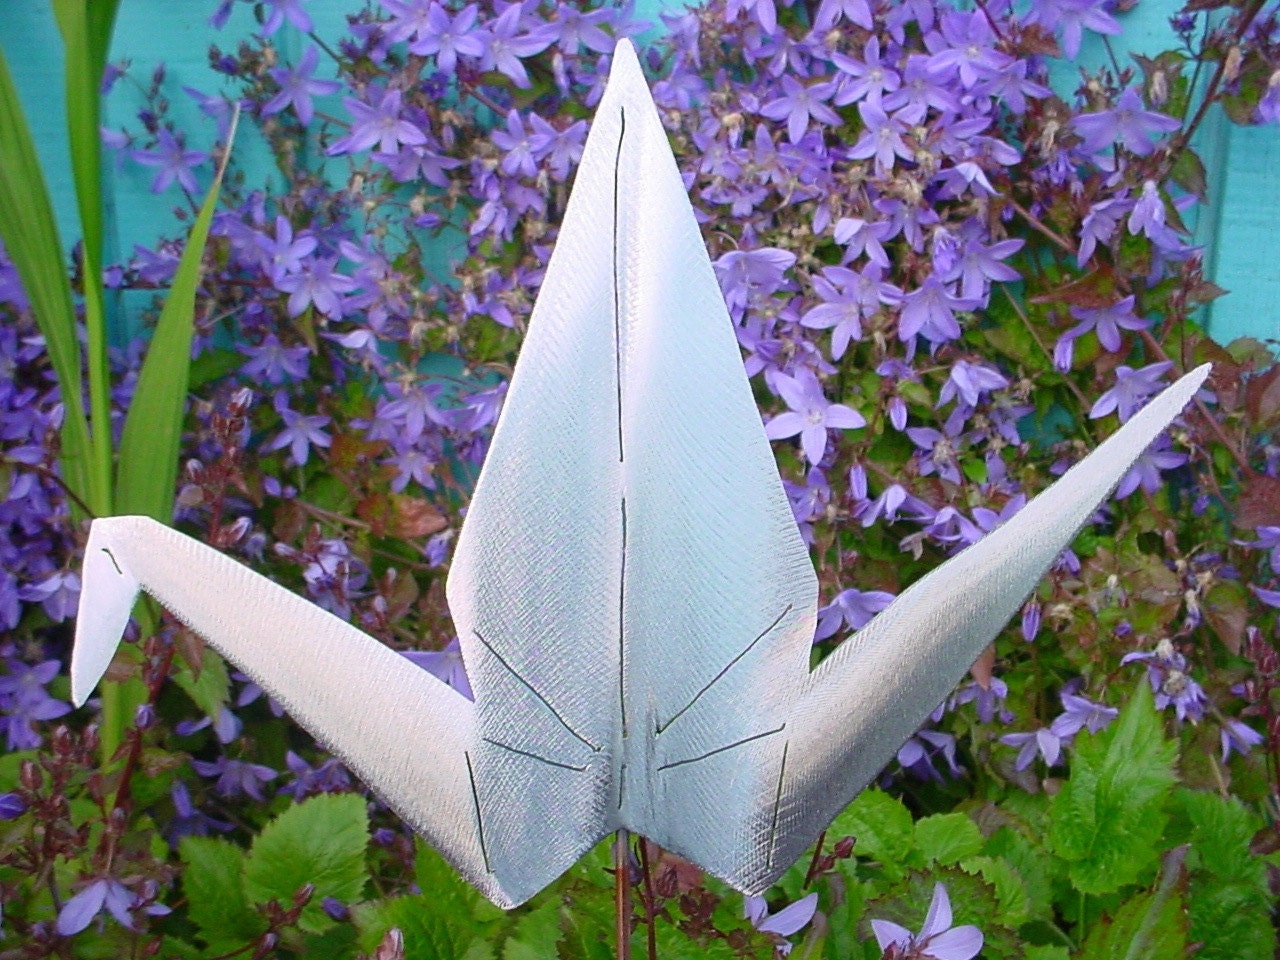 Japanese asian metal origami crane lawn decor steel yard art for Lawn and garden decorative accessories